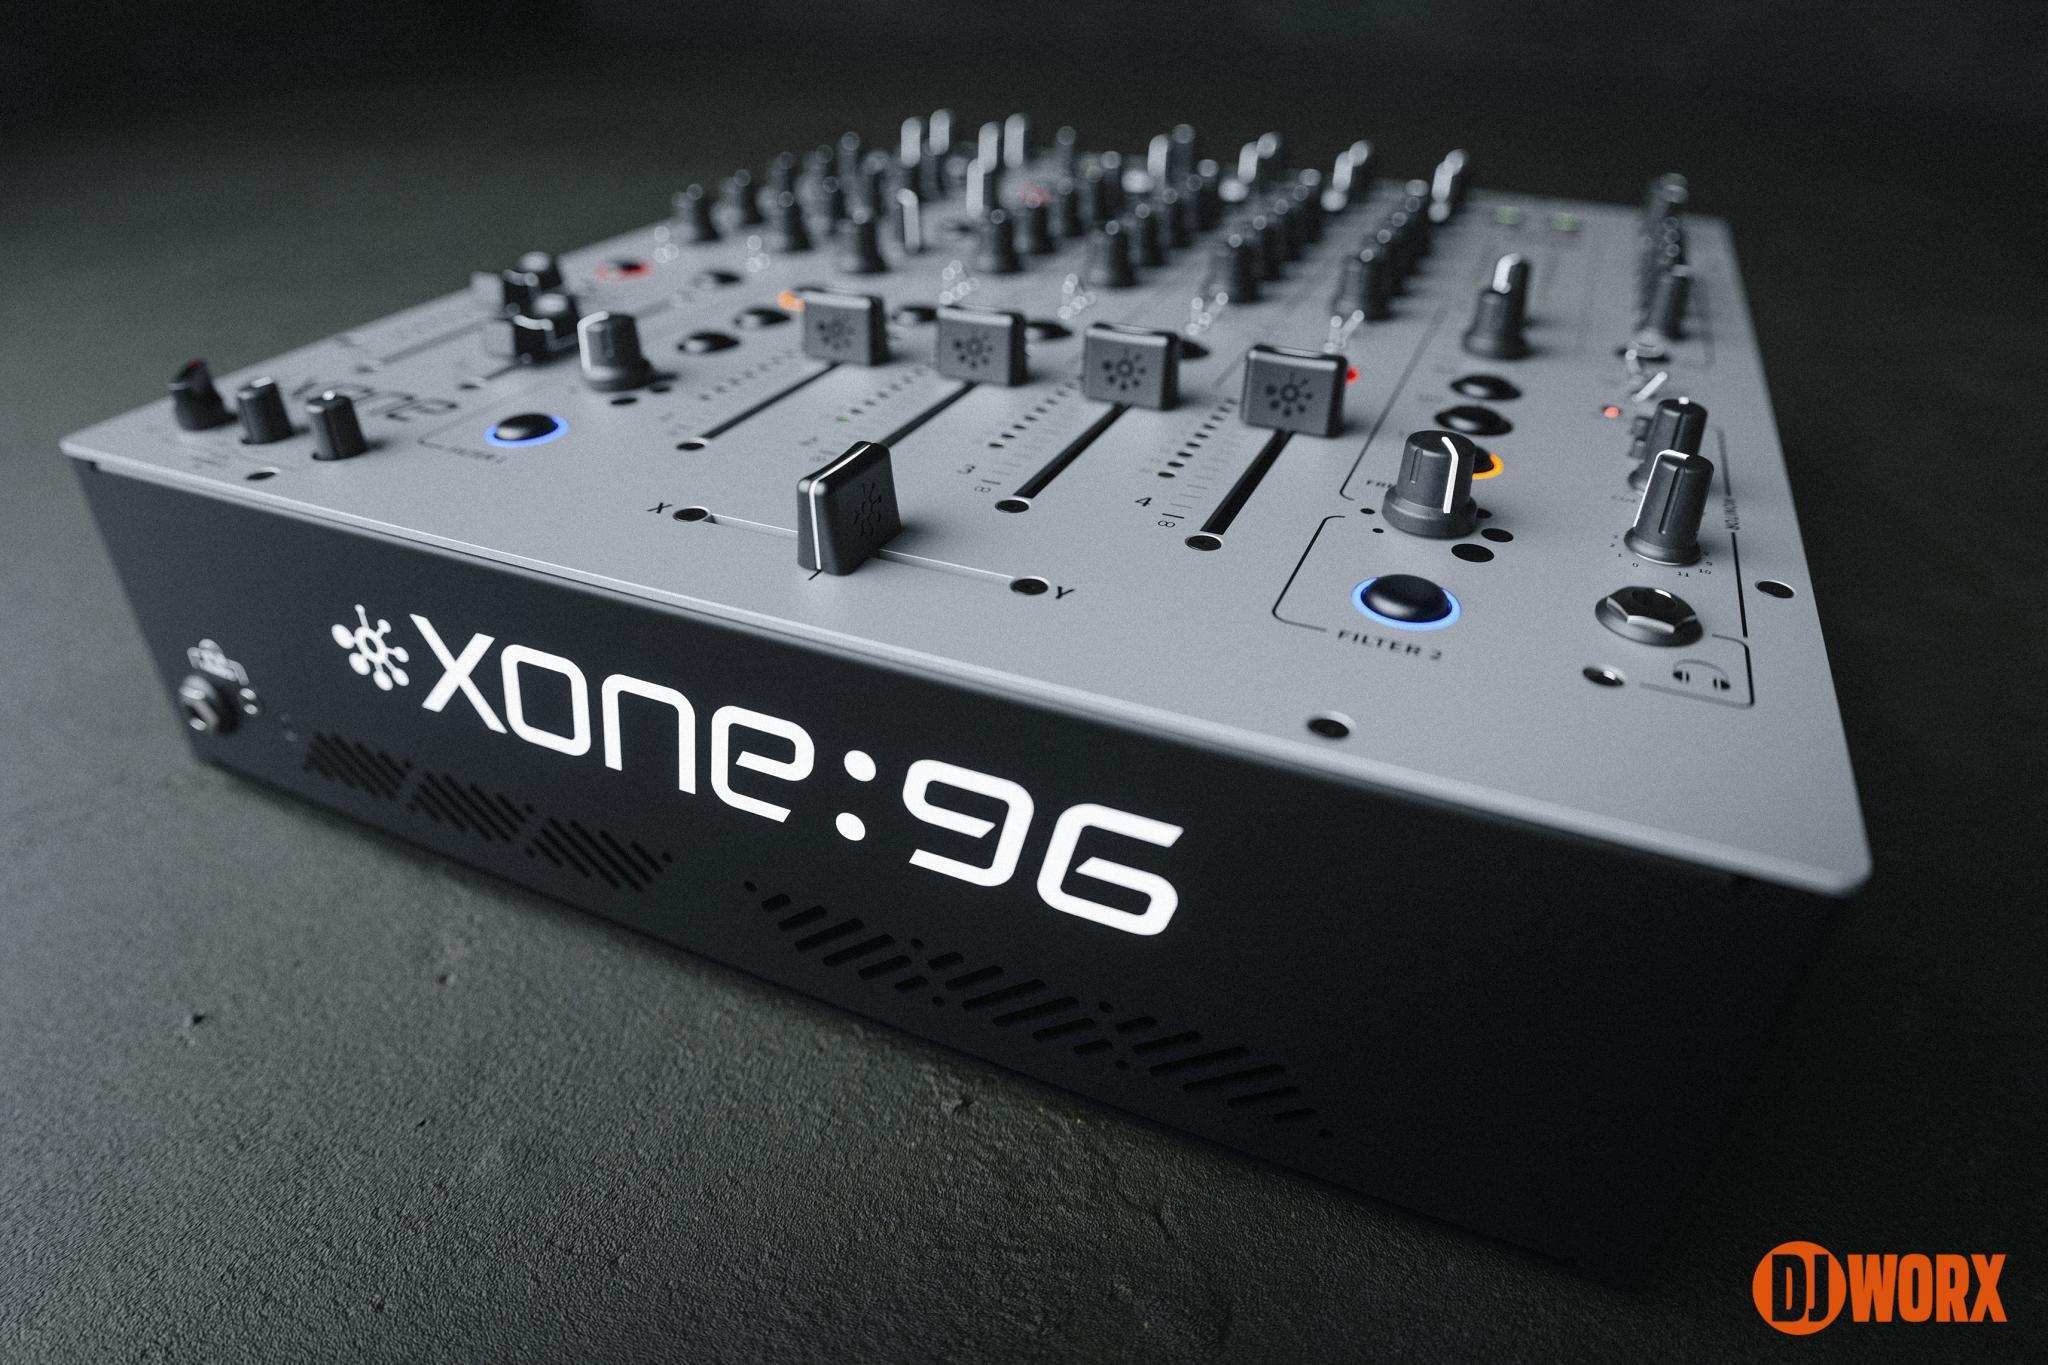 REVEALED: Allen & Heath Xone:96 aka Xone:92 mk2 5